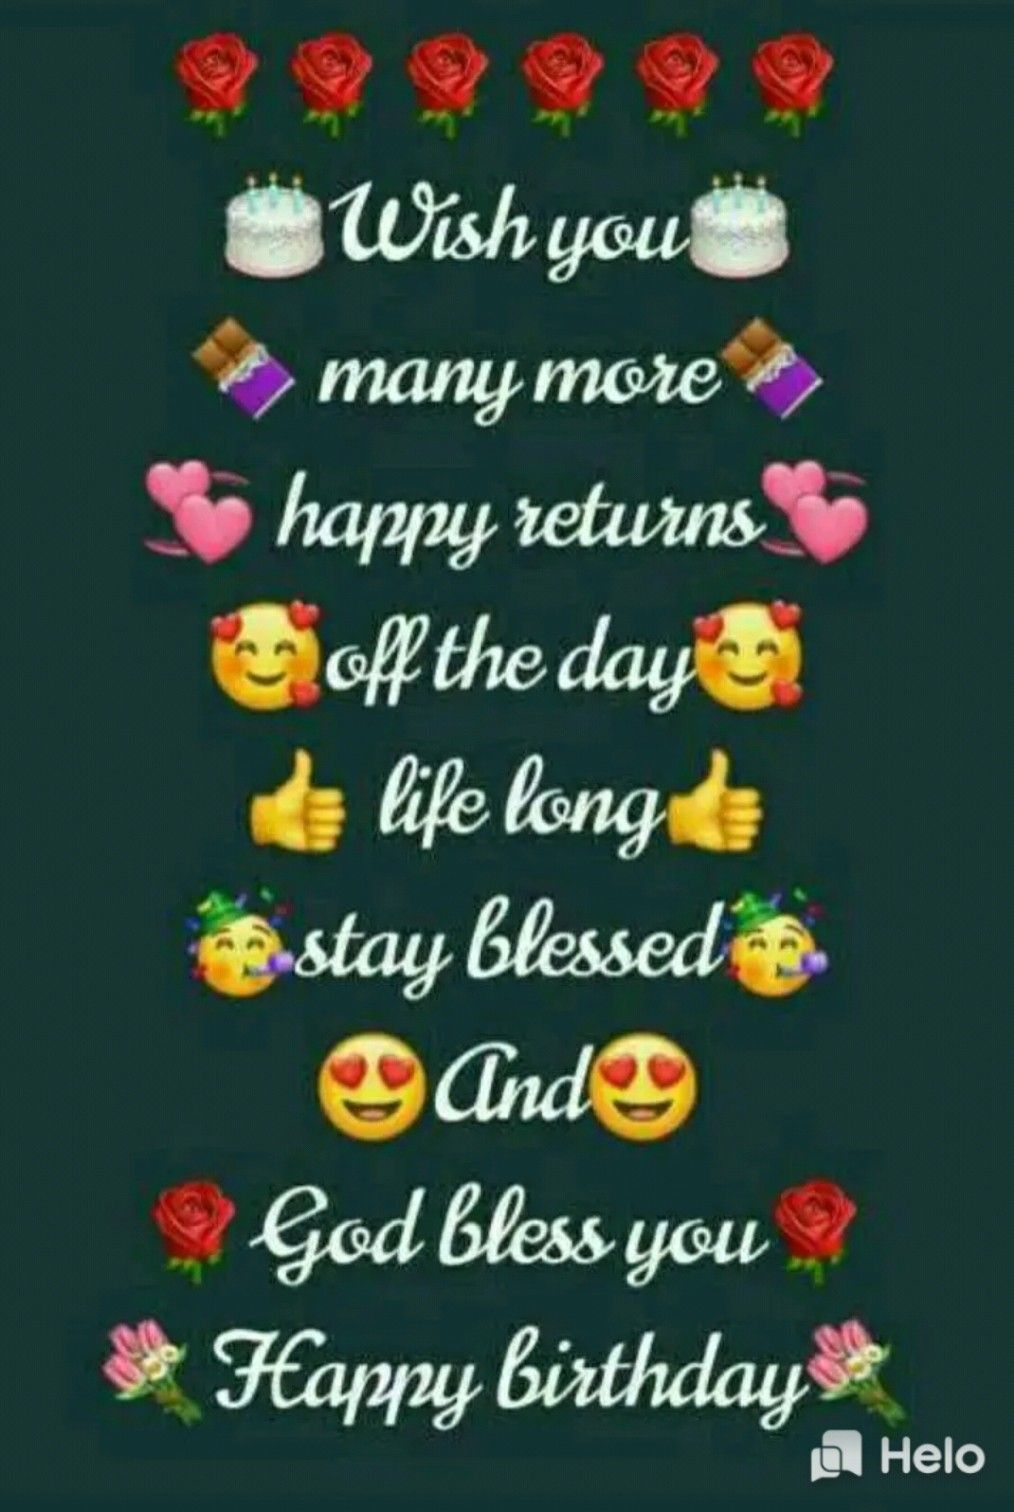 Pin By Neha Naaz On Greetings Happy Birthday Wishes Cards Happy Birthday Wishes Quotes Happy Birthday Quotes